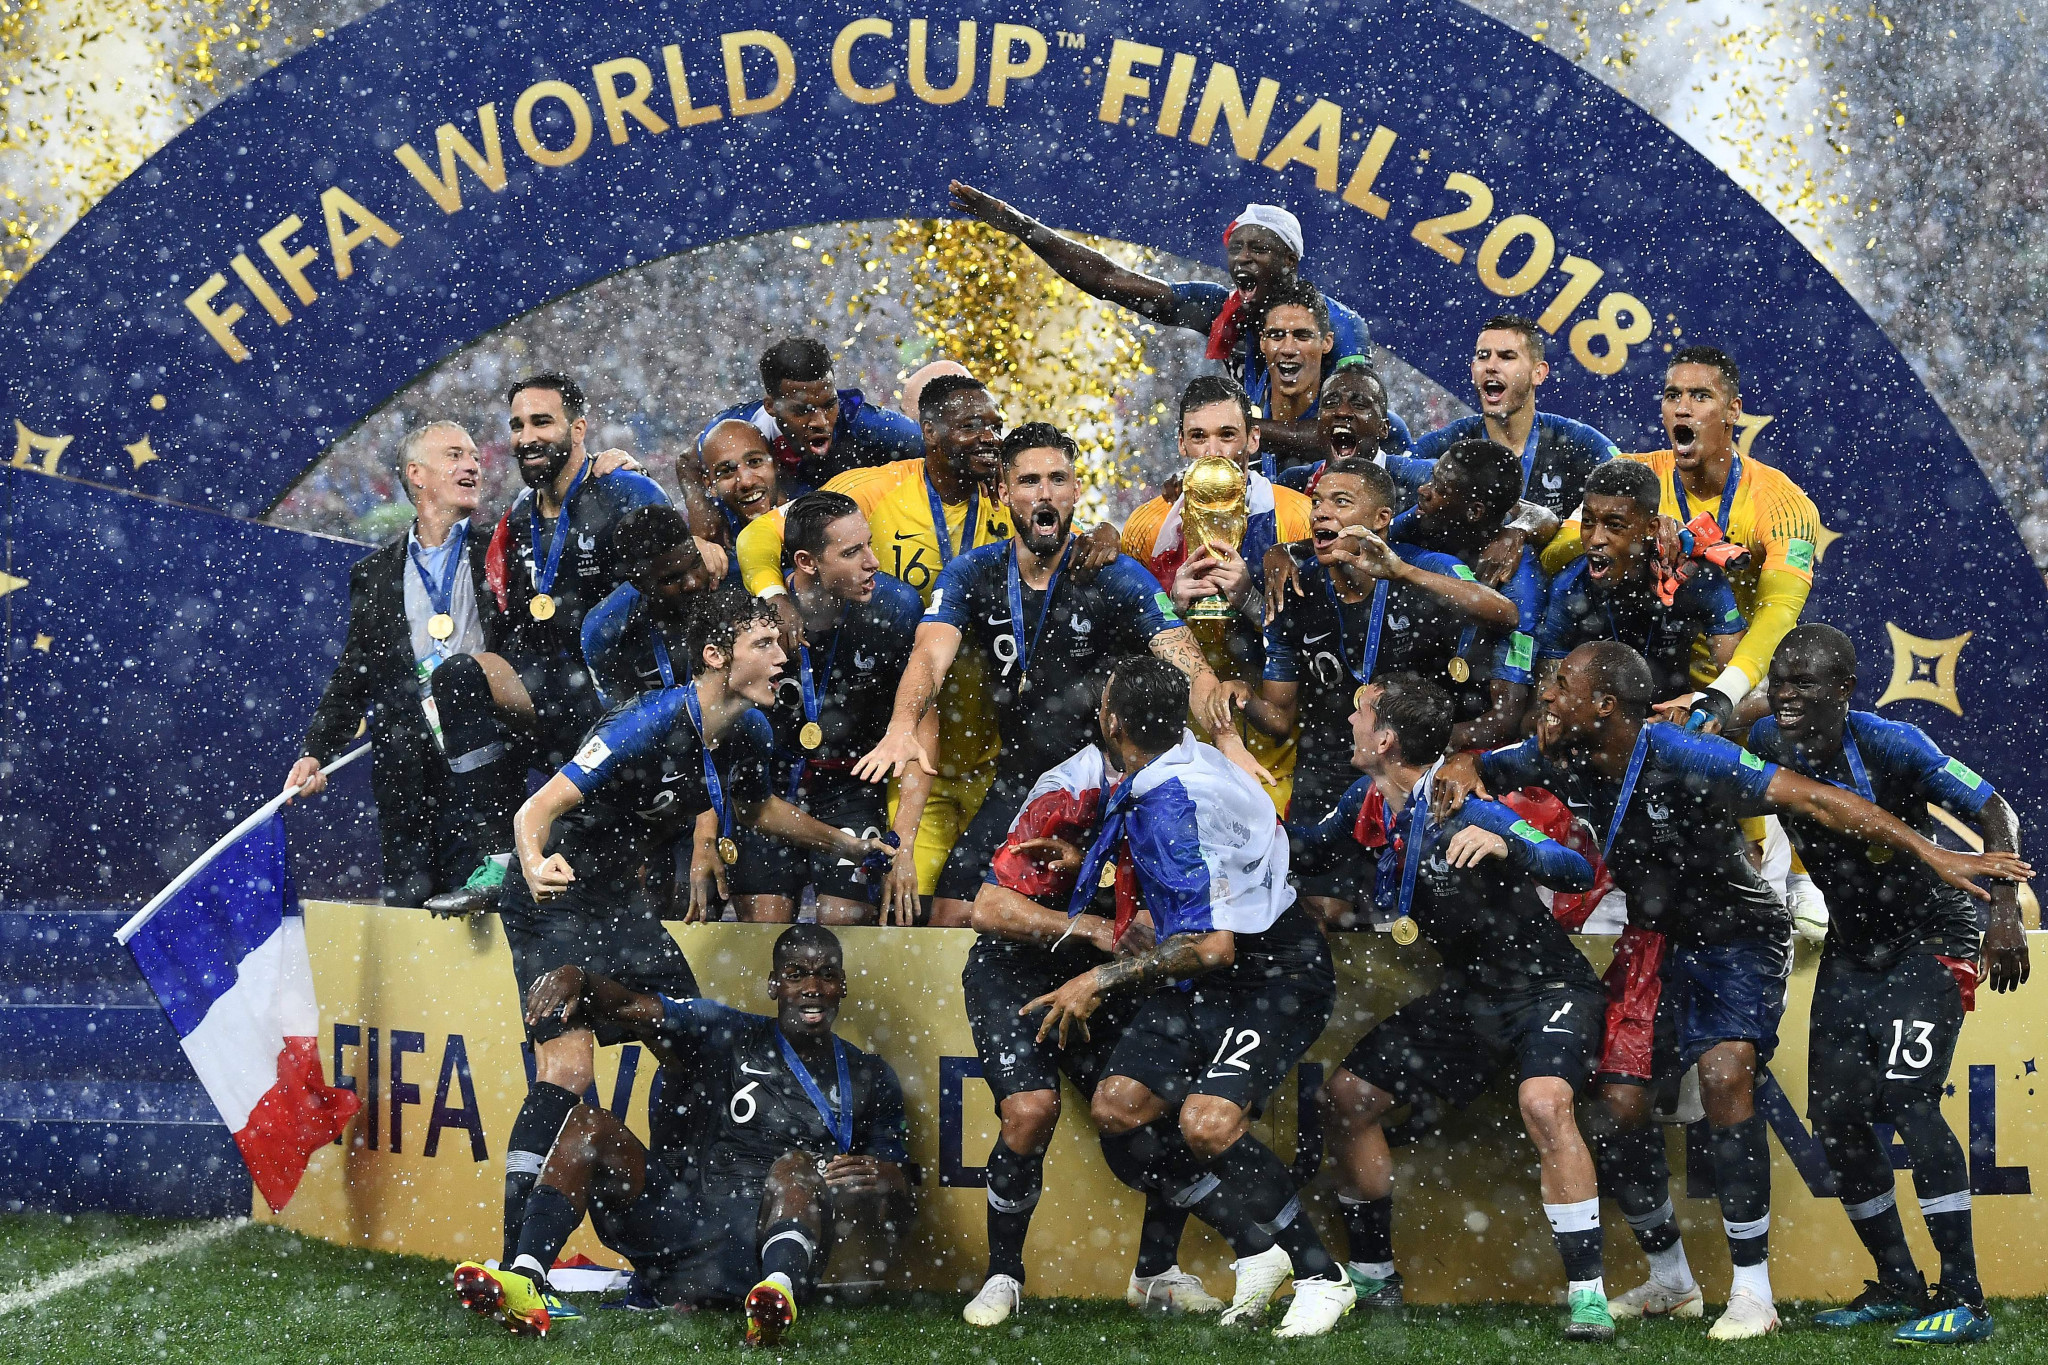 """UEFA calls for """"proper consultation"""" over plans for biennial World Cup and criticises FIFA's """"speculative"""" approach"""